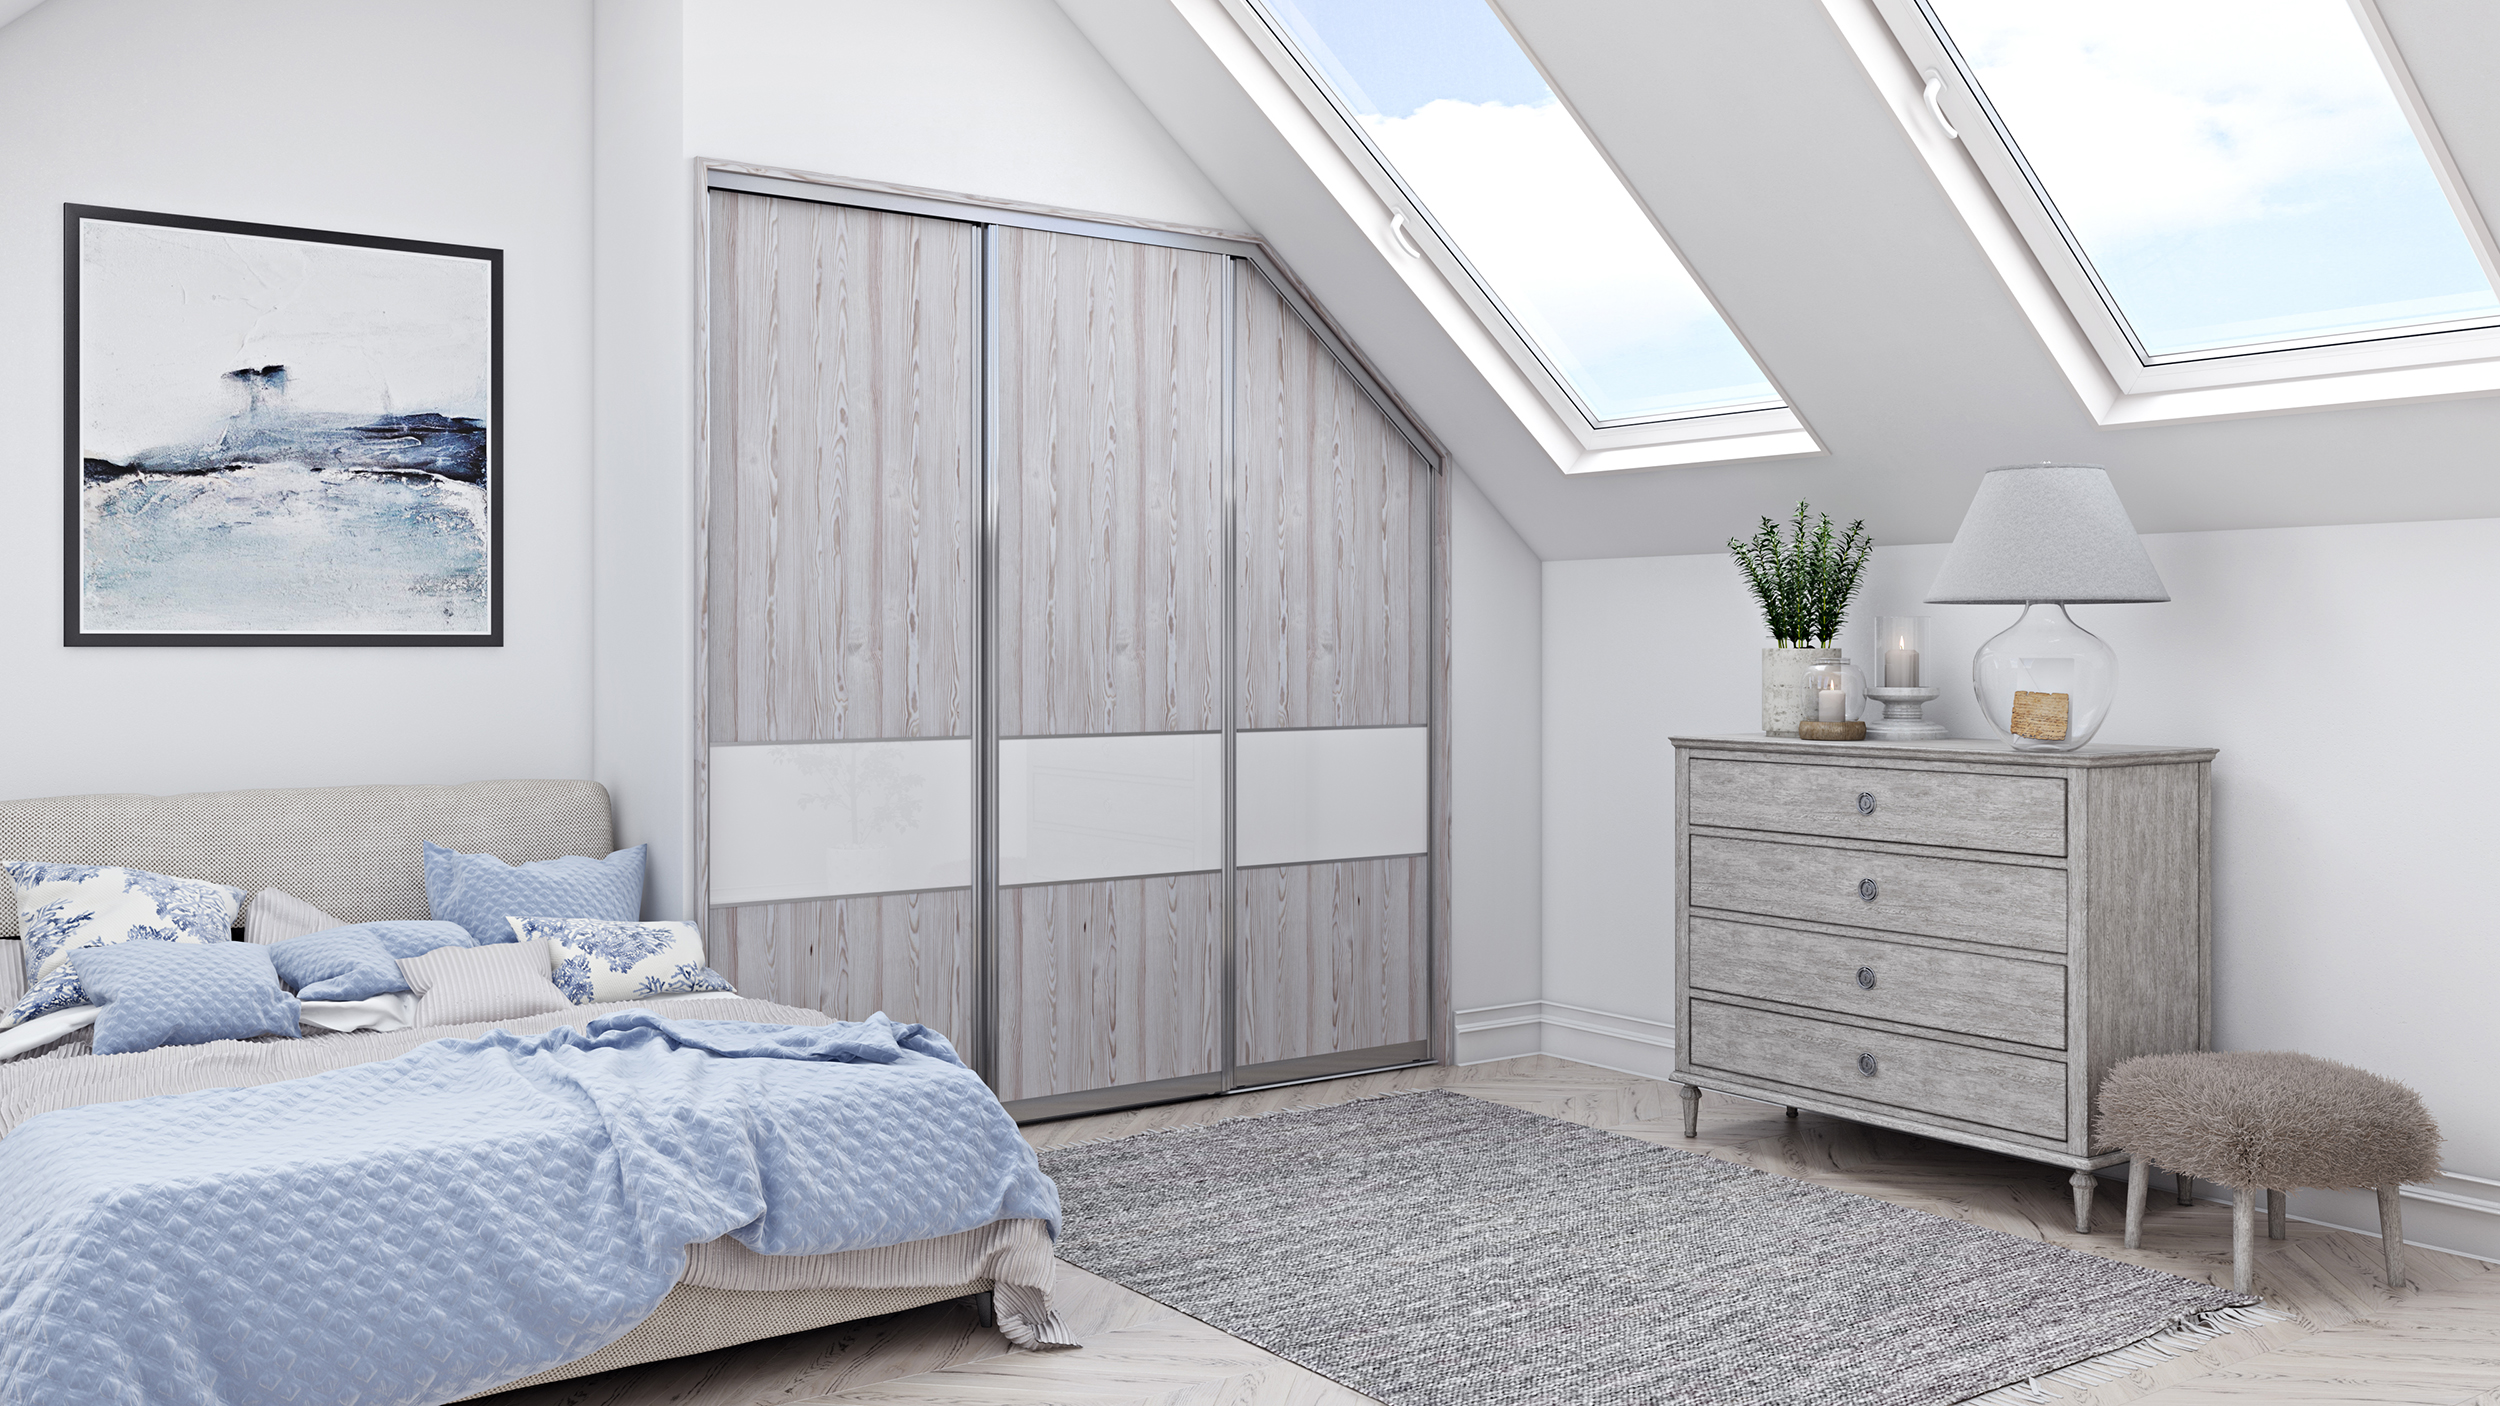 Resized Veneto White 202 - White Mountain Larch doors with Pure White Glass feature panels and Napoli Silver frame.jpg